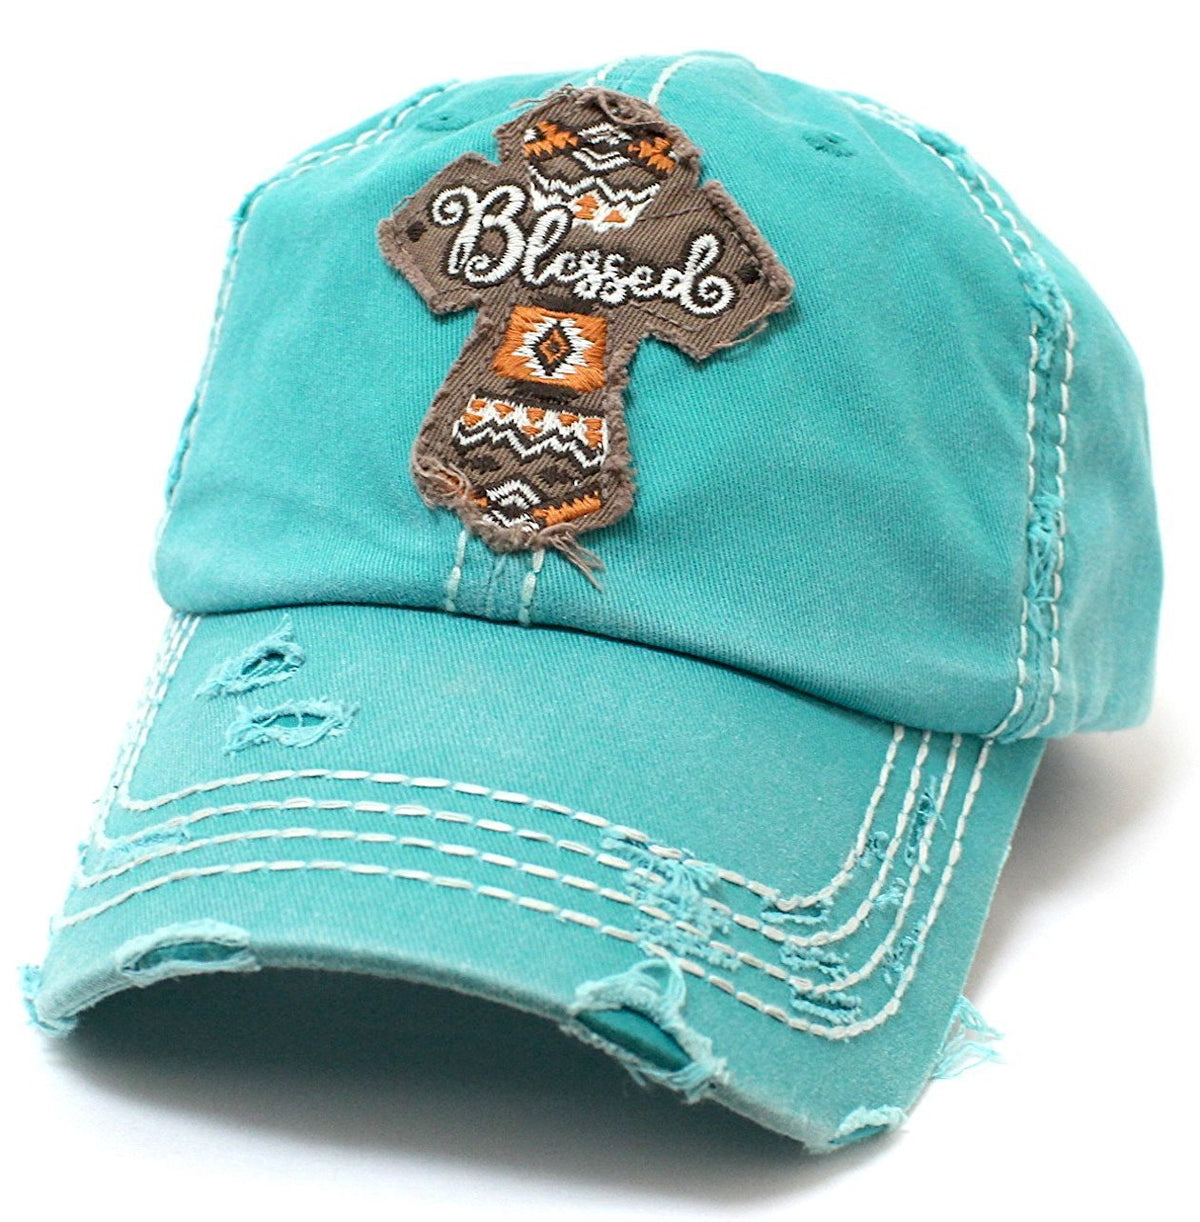 CAPS 'N VINTAGE Blessed Cross Patch Embroidery Vintage Baseball Hat - Caps 'N Vintage